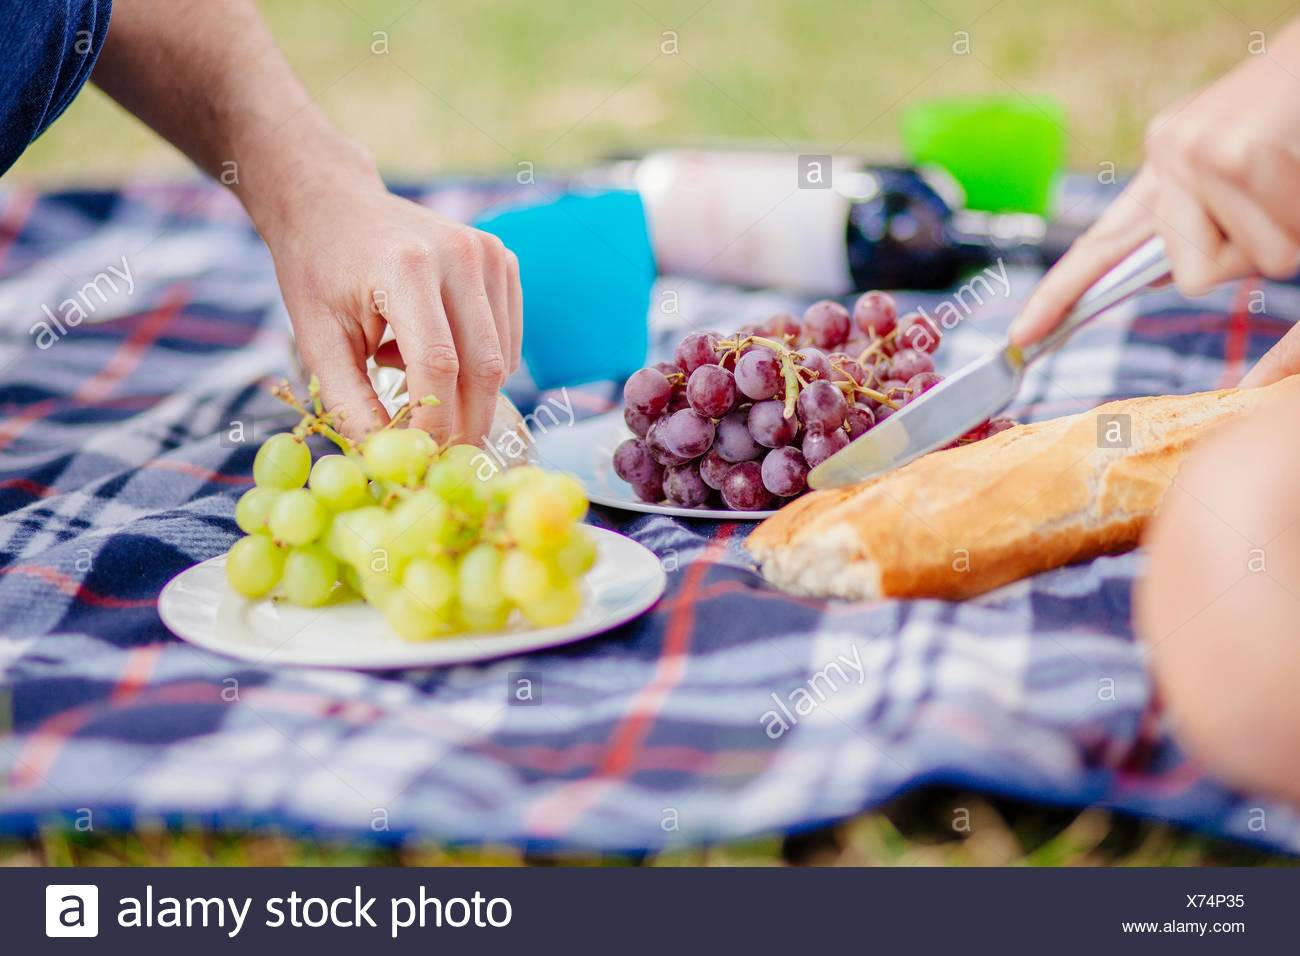 Cropped view of couples hands reaching for grapes on picnic blanket - Stock Image